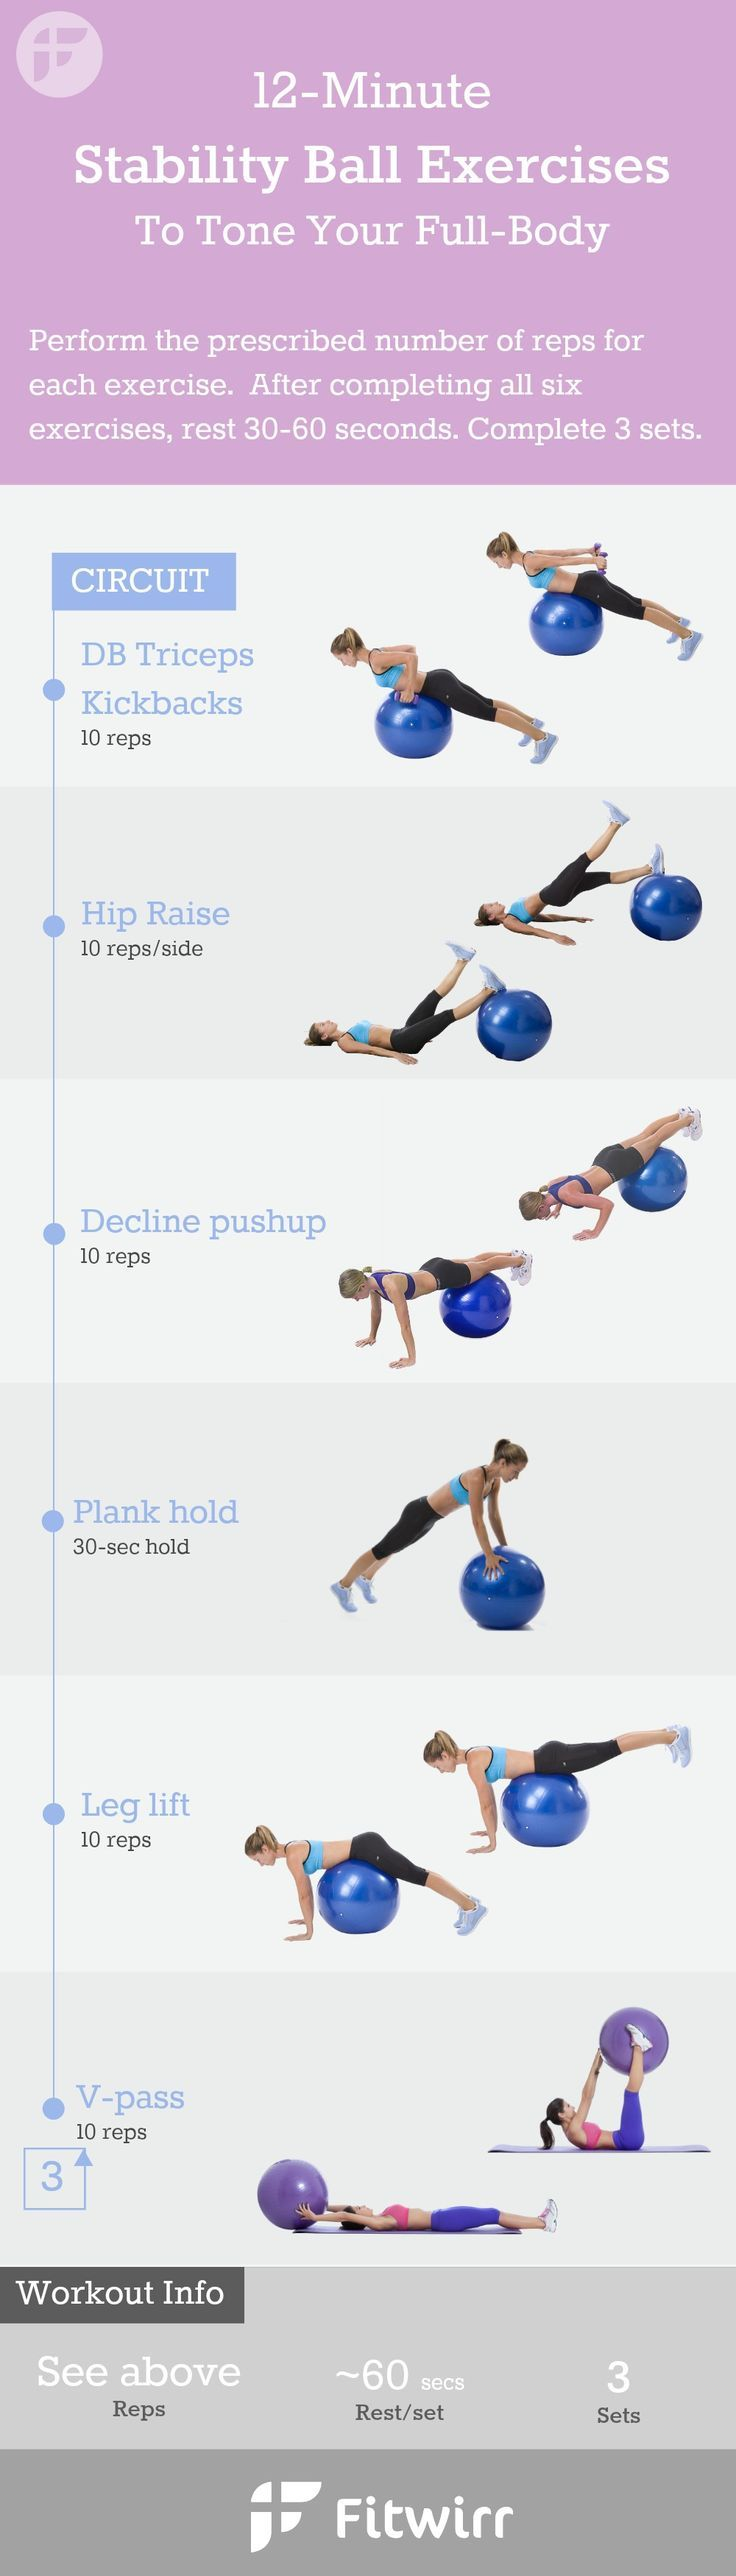 Get ready to slim down and tone up with stability ball exercises—6 ultra super moves to strengthen, stretch and tone up your body all over. Get ready to get in